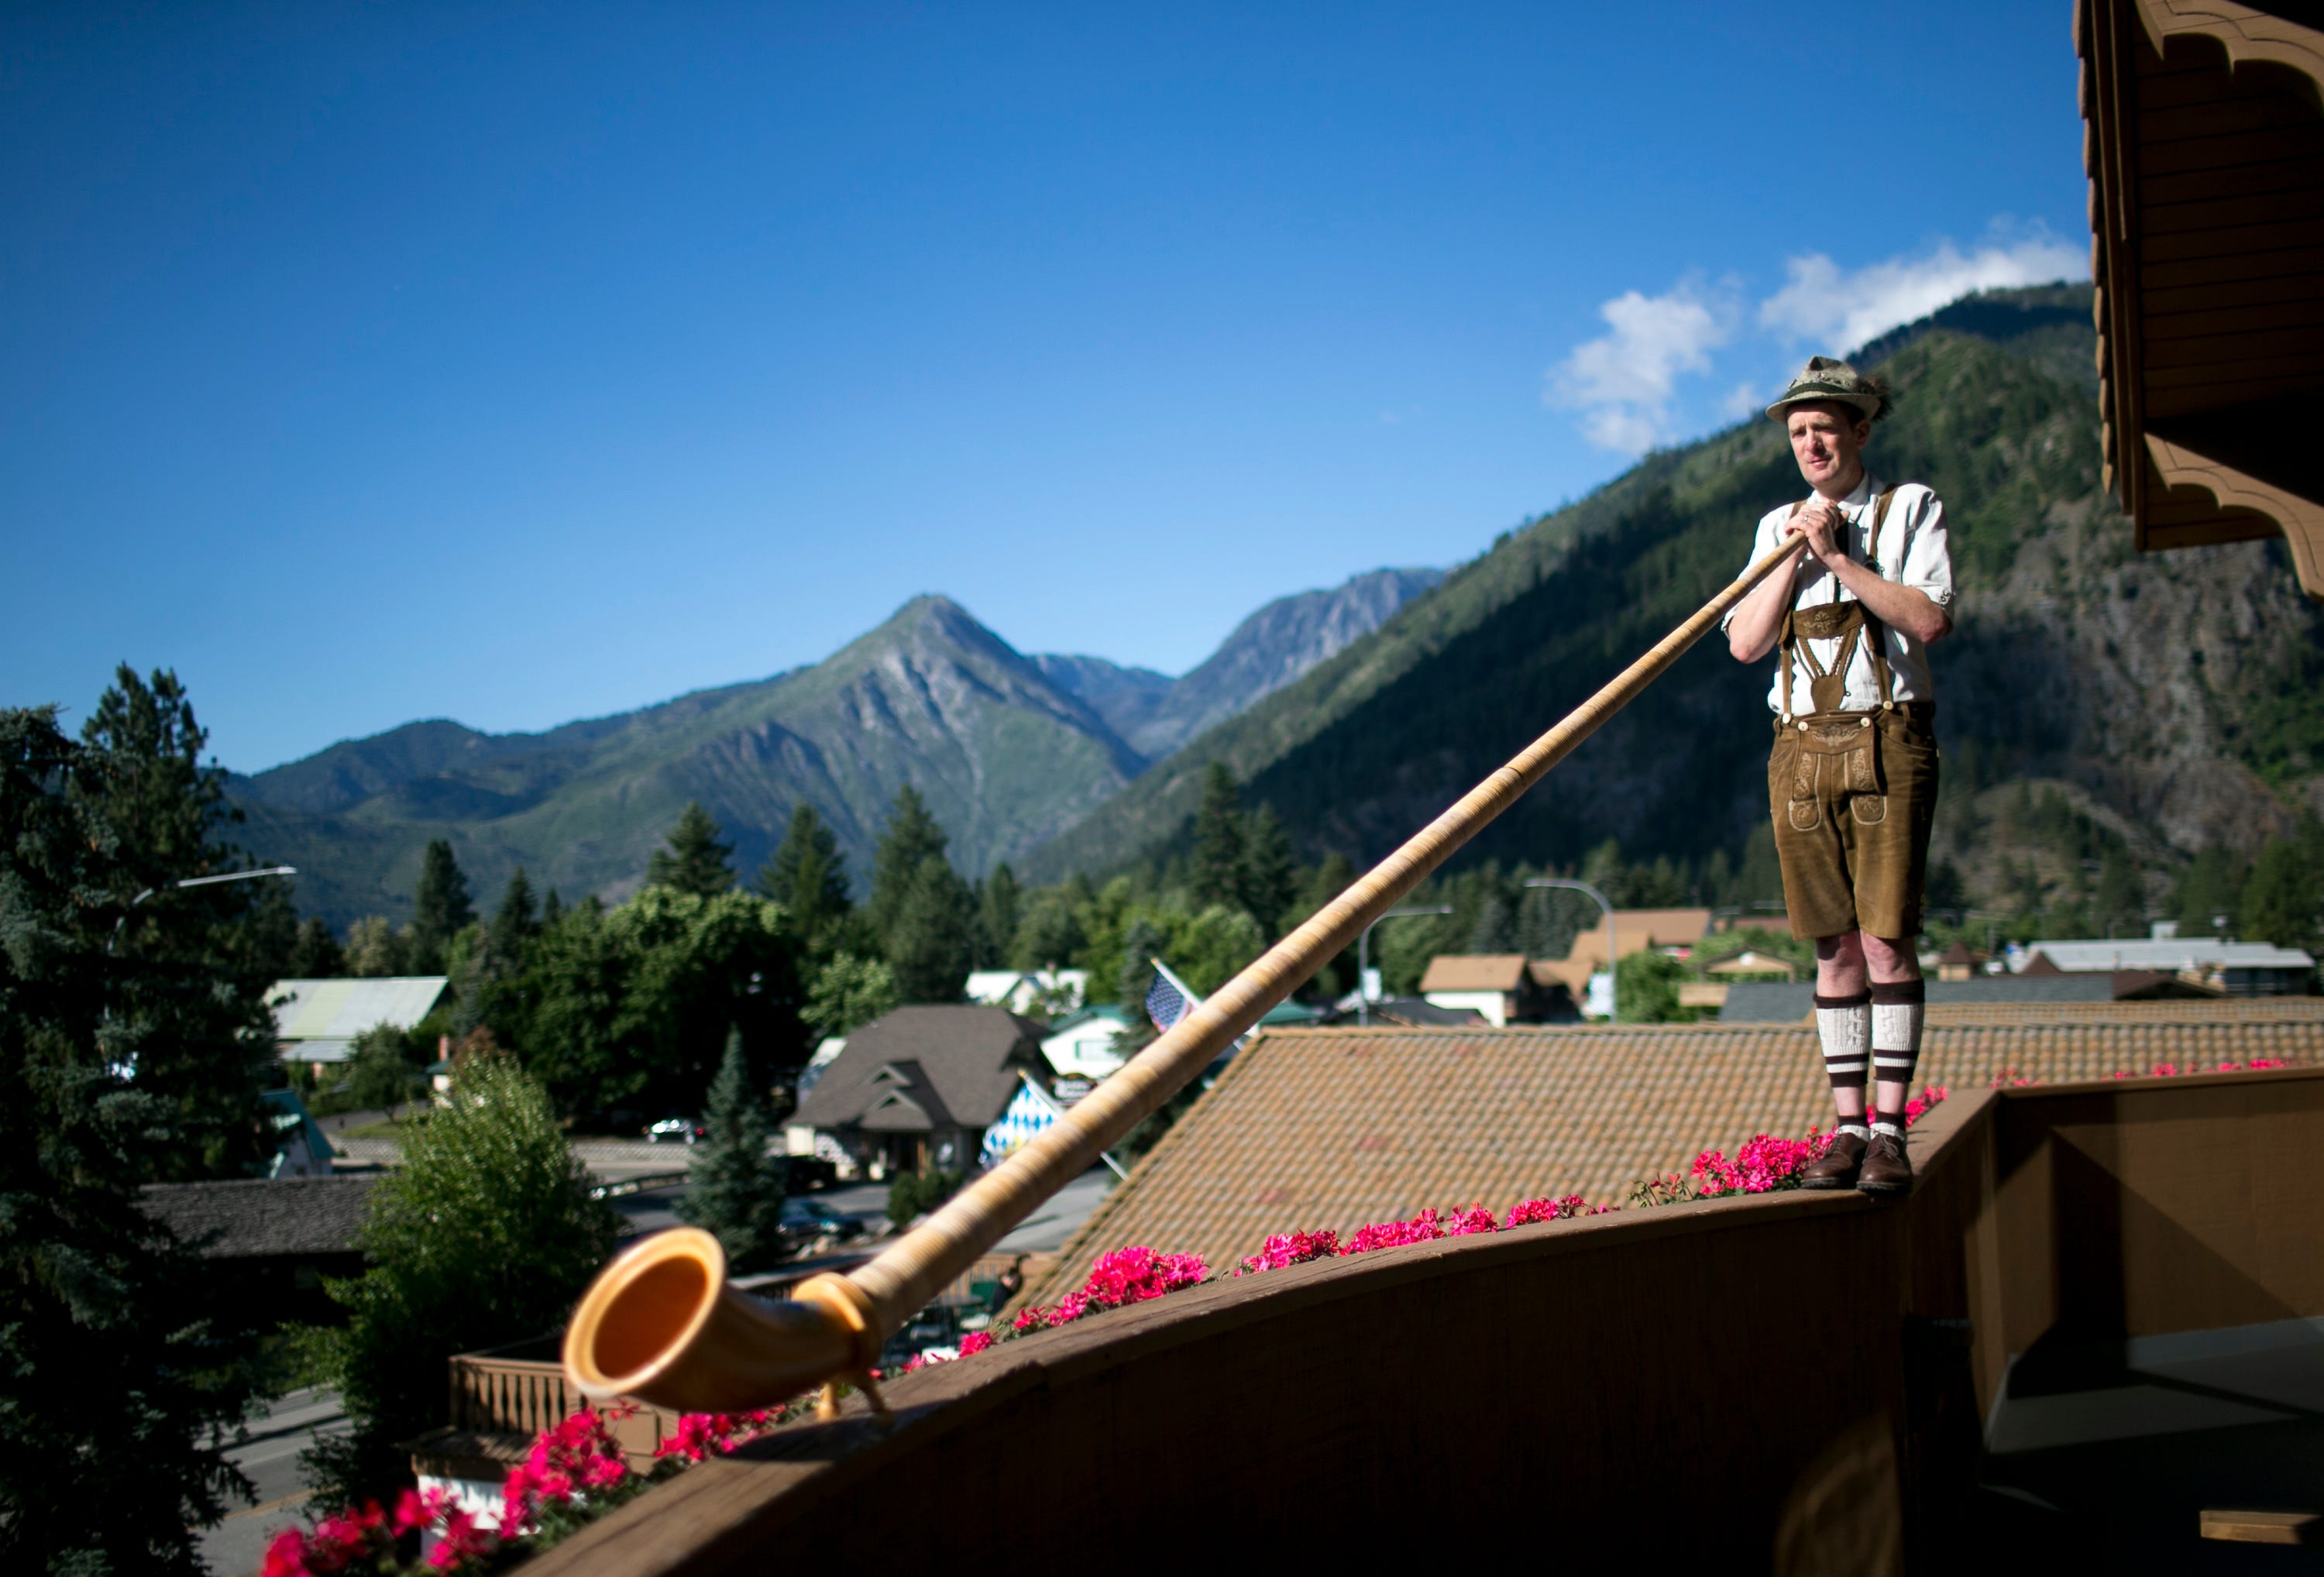 Jordan Brown, general manager at the Enzian Inn, plays an alphorn from the Inn's balcony in Leavenworth, Washington, on June 19, 2019. Leavenworth was stylized into a Bavarian town to promote tourism in the 80s and someone has played the alphorn from hits balcony every morning for nearly 30 years.